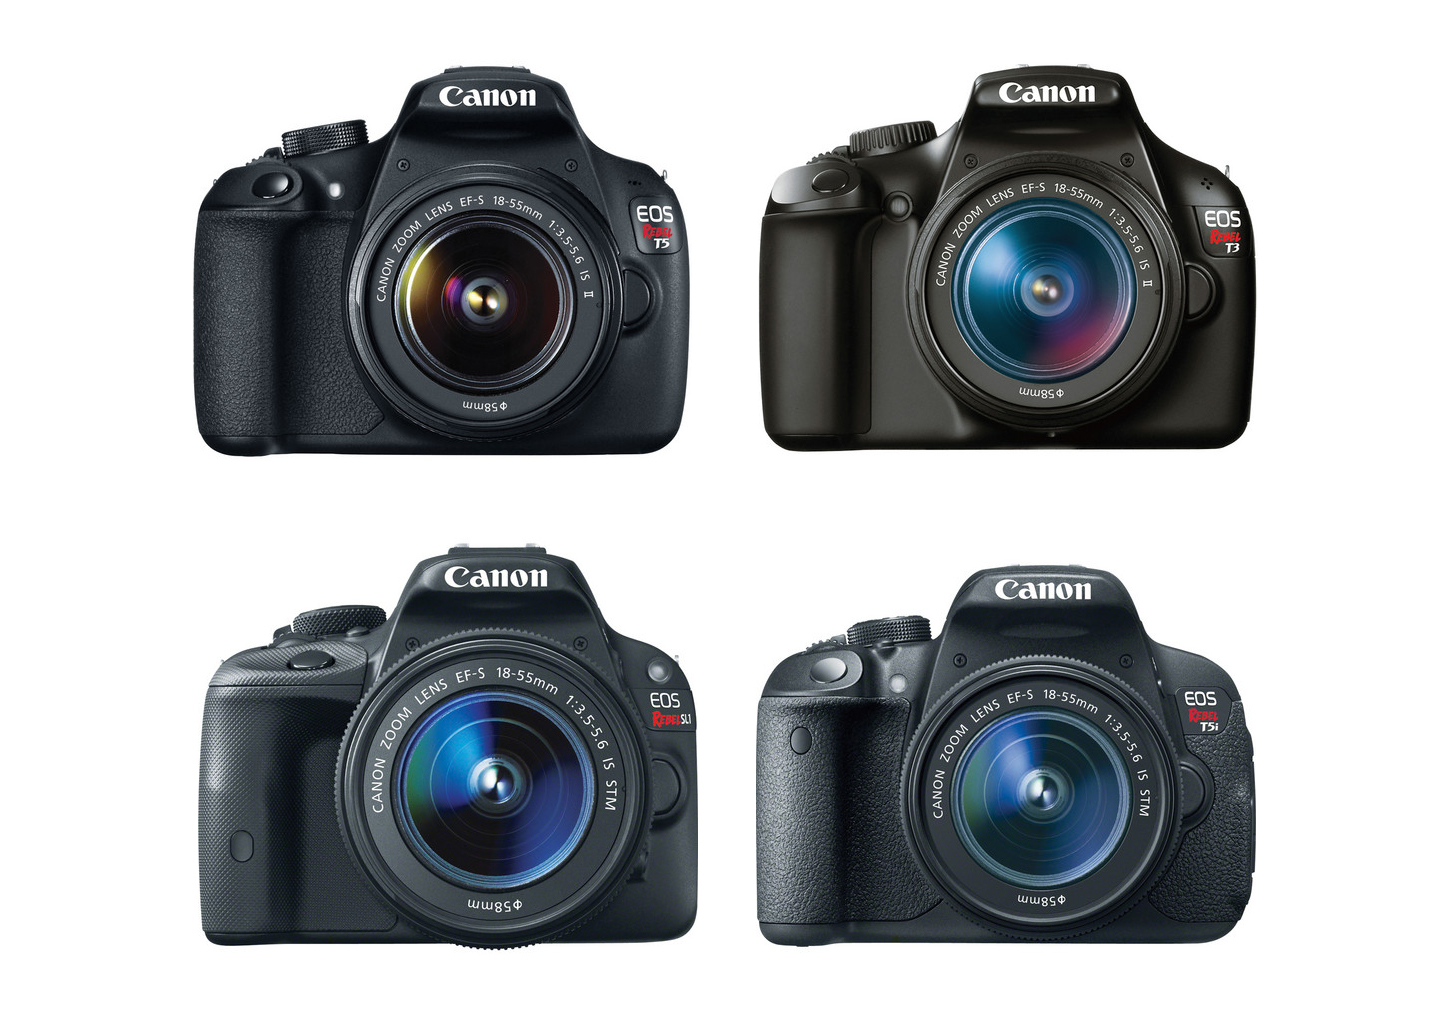 Canon EOS 700D / Rebel T5i – Camera News at Cameraegg